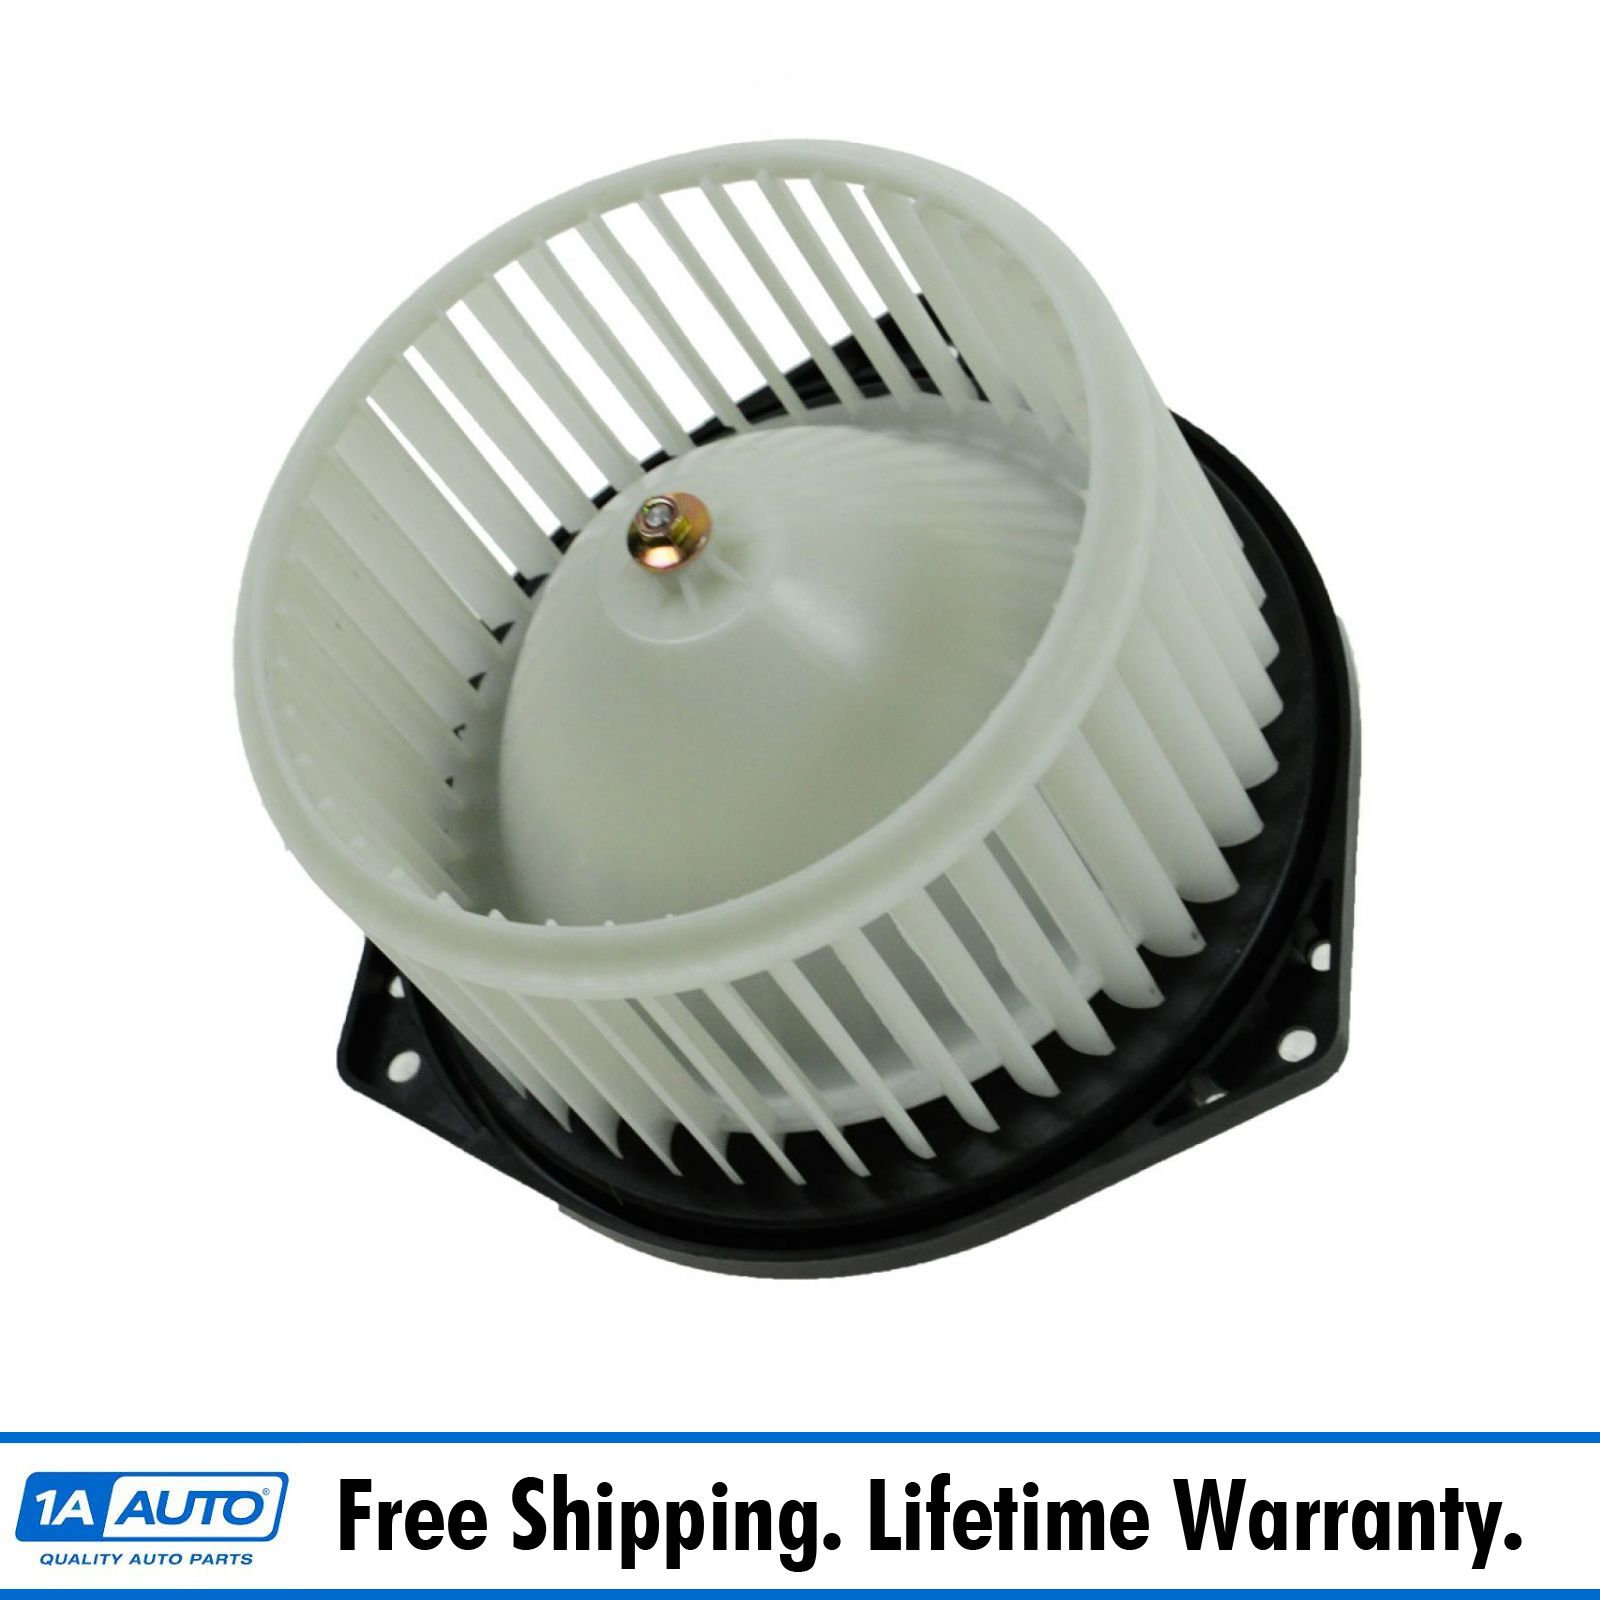 Interior Heater Blower Motor W/ Fan Cage NEW For 03-07